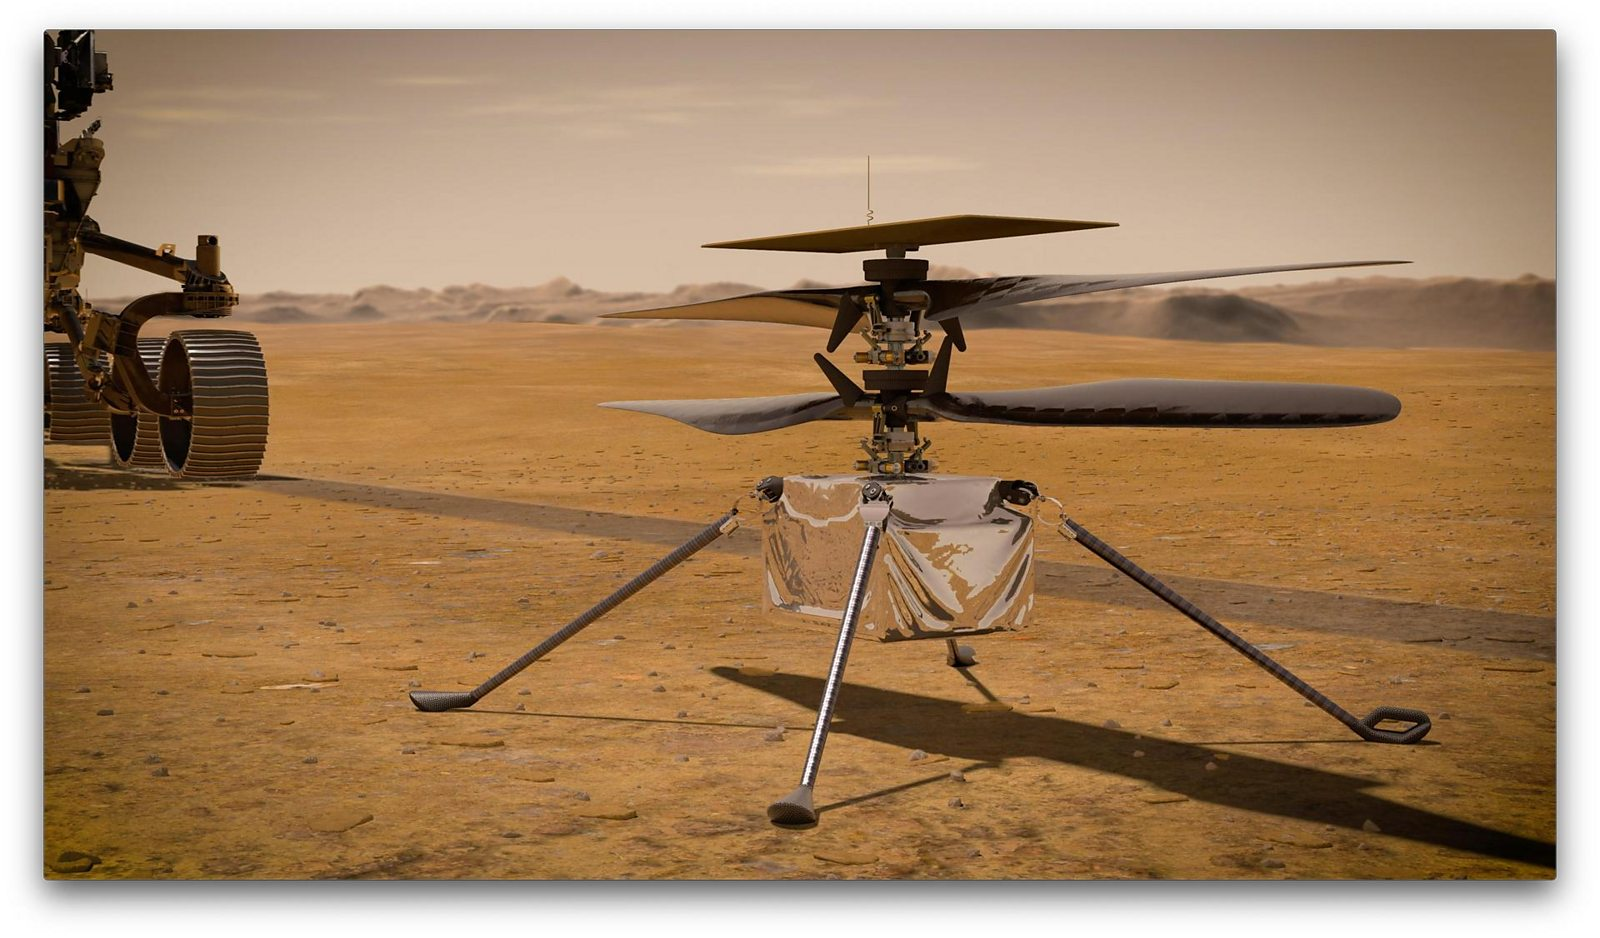 The first aircraft to fly on another planet